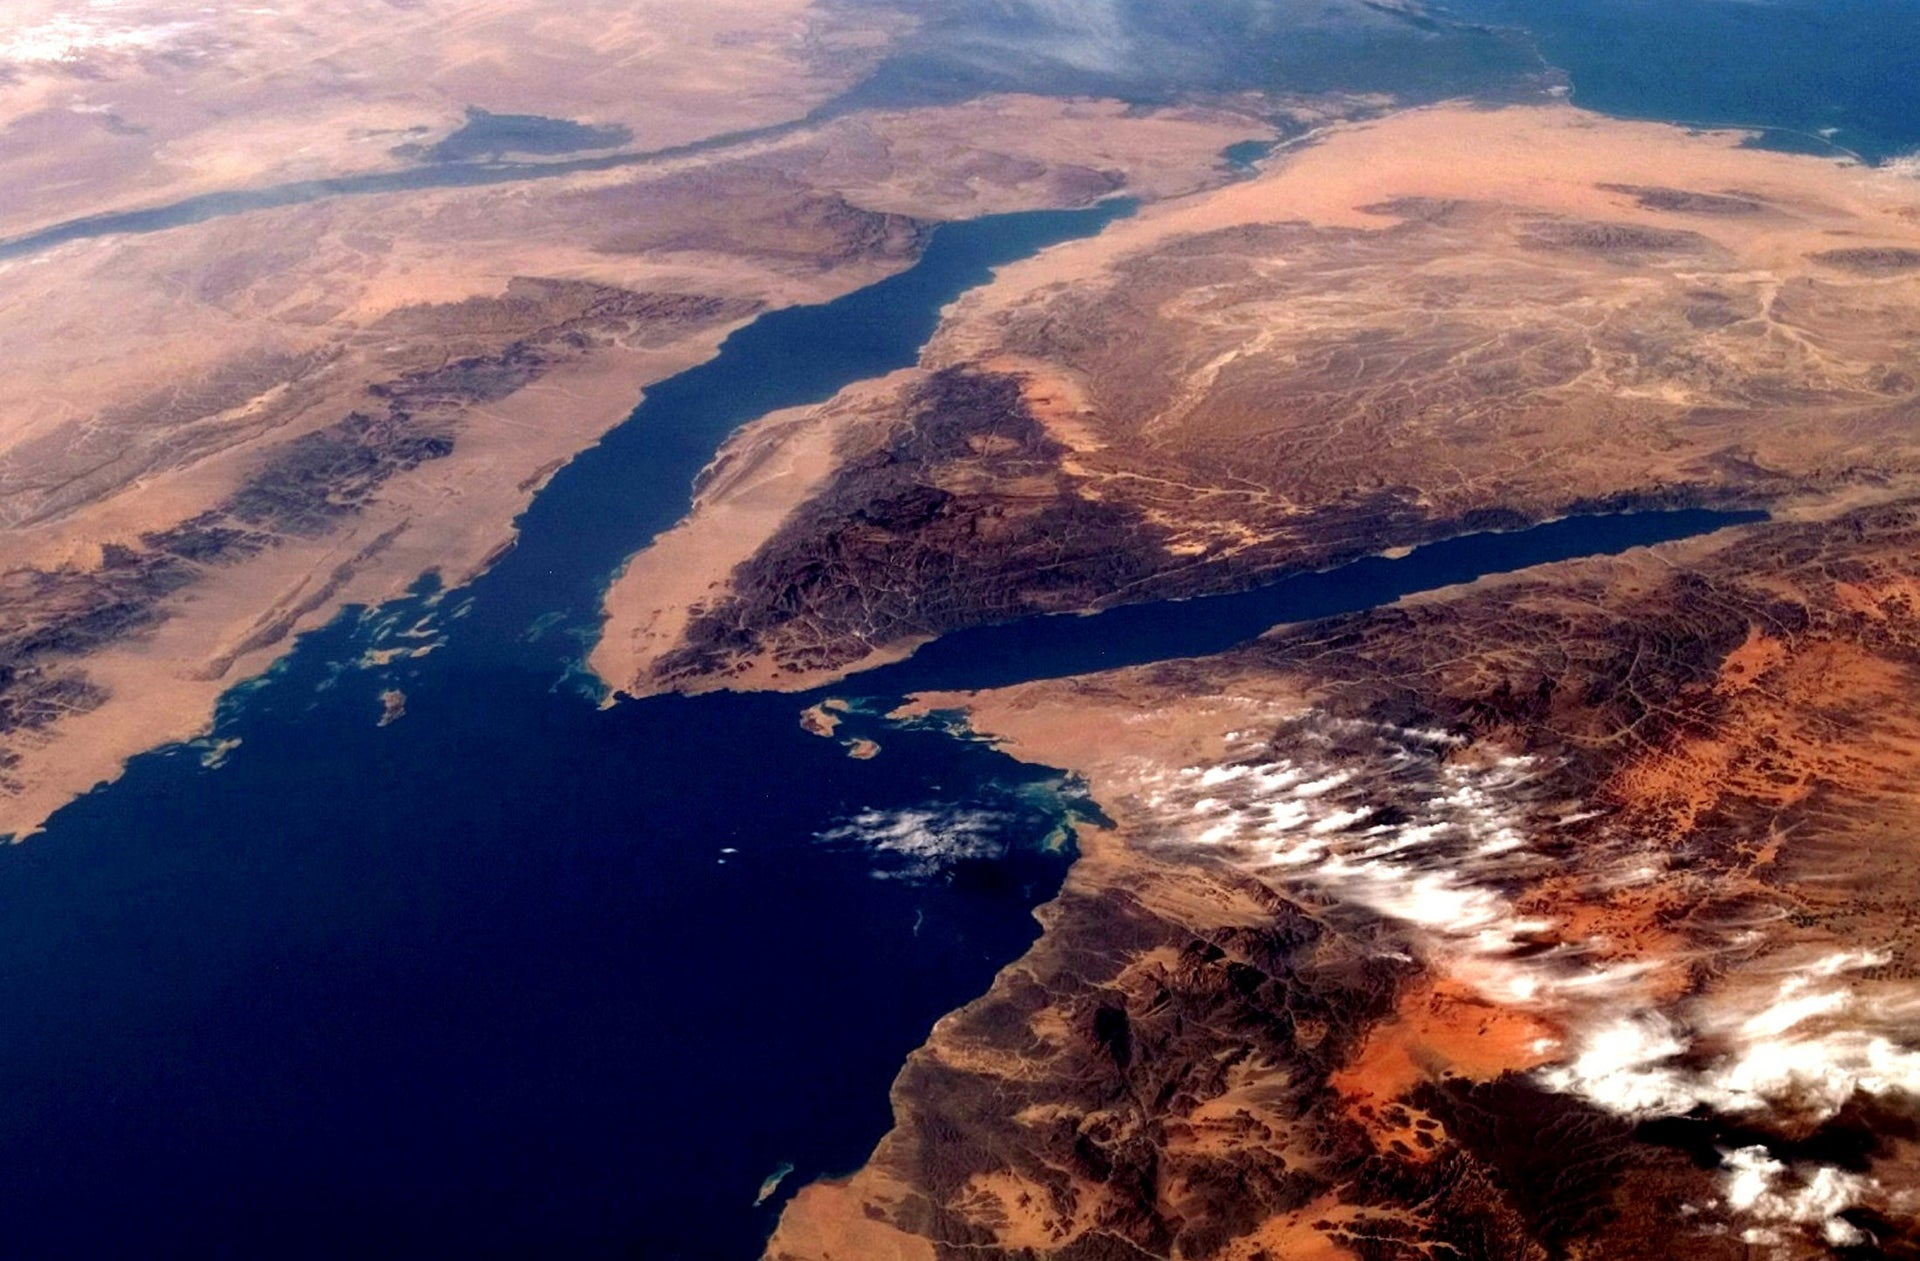 Sinai, between the Gulf of Suez (west) and Gulf of Aqaba (east).